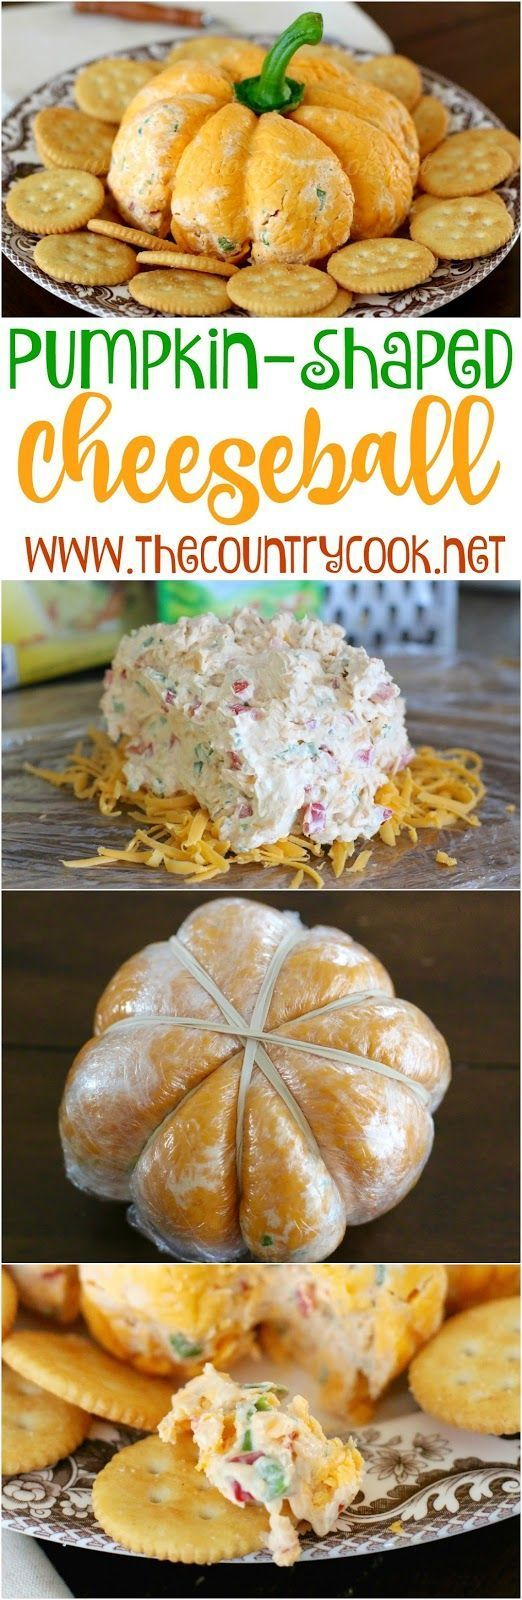 Pumpkin {Shaped} Cheese Ball recipe from The Country Cook. I took this to a get-together and everyone went nuts for it! They absolutely loved the way it looked and the way it tasted! Folks were taking pictures - ha! It's ranch and veggie flavored and so g